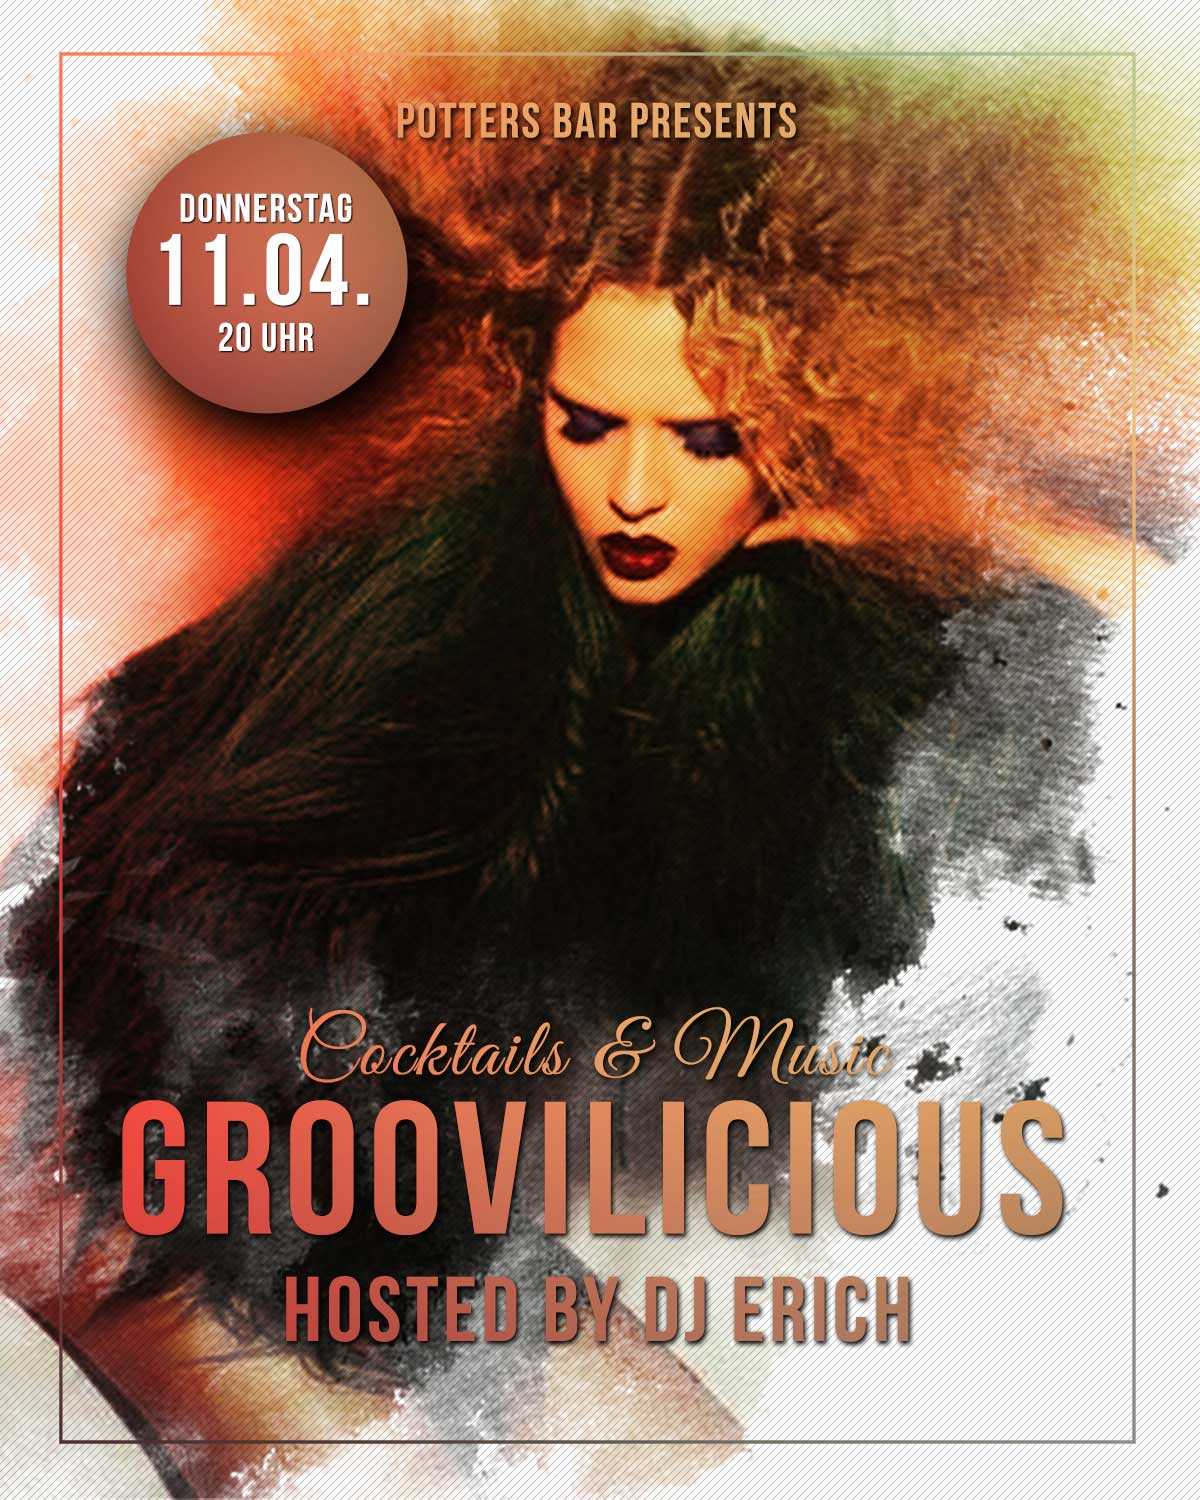 Potters Bar Hildesheim Event Groovilicious